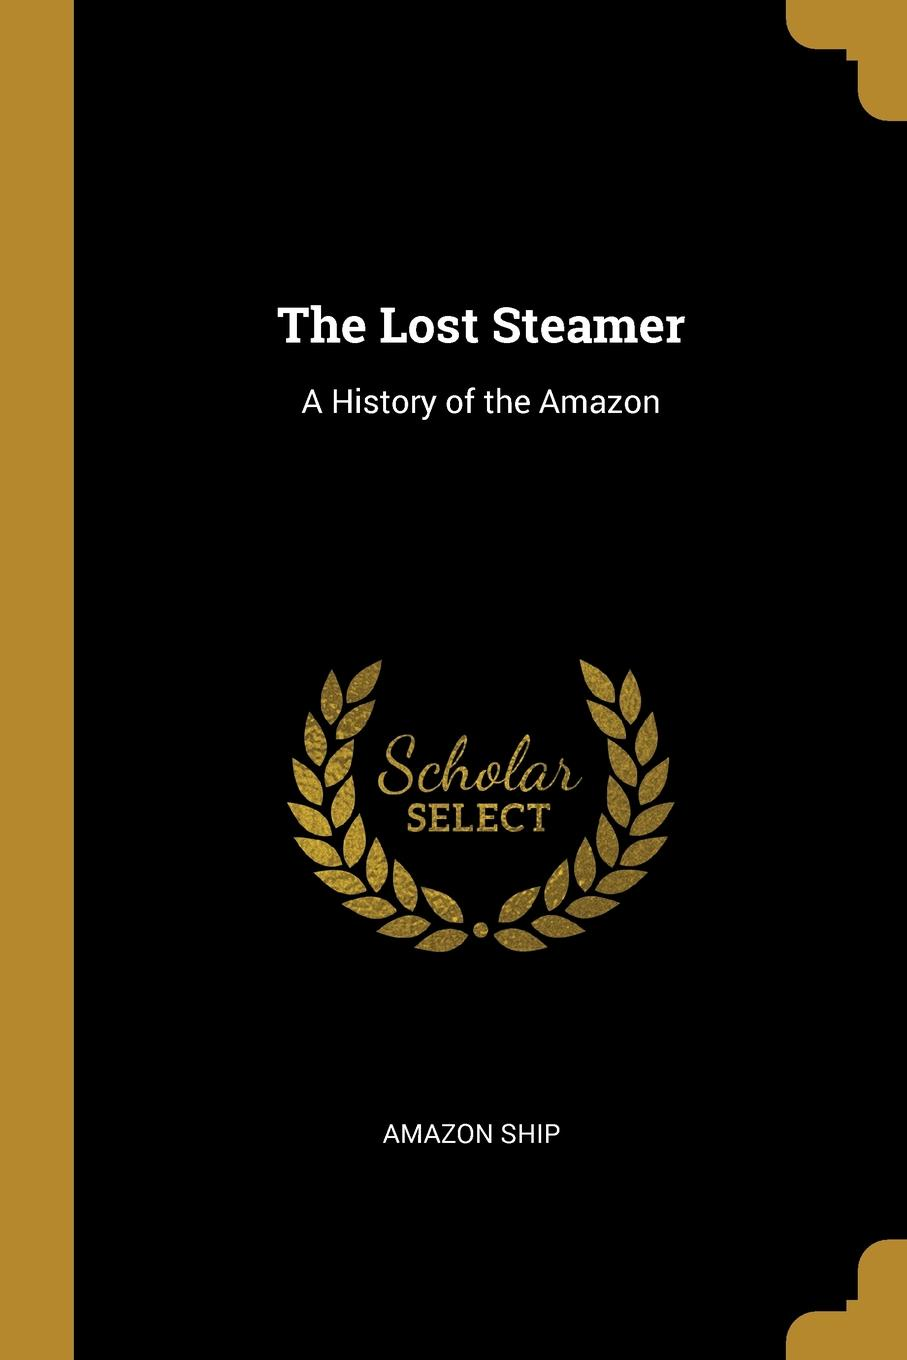 The Lost Steamer. A History of the Amazon